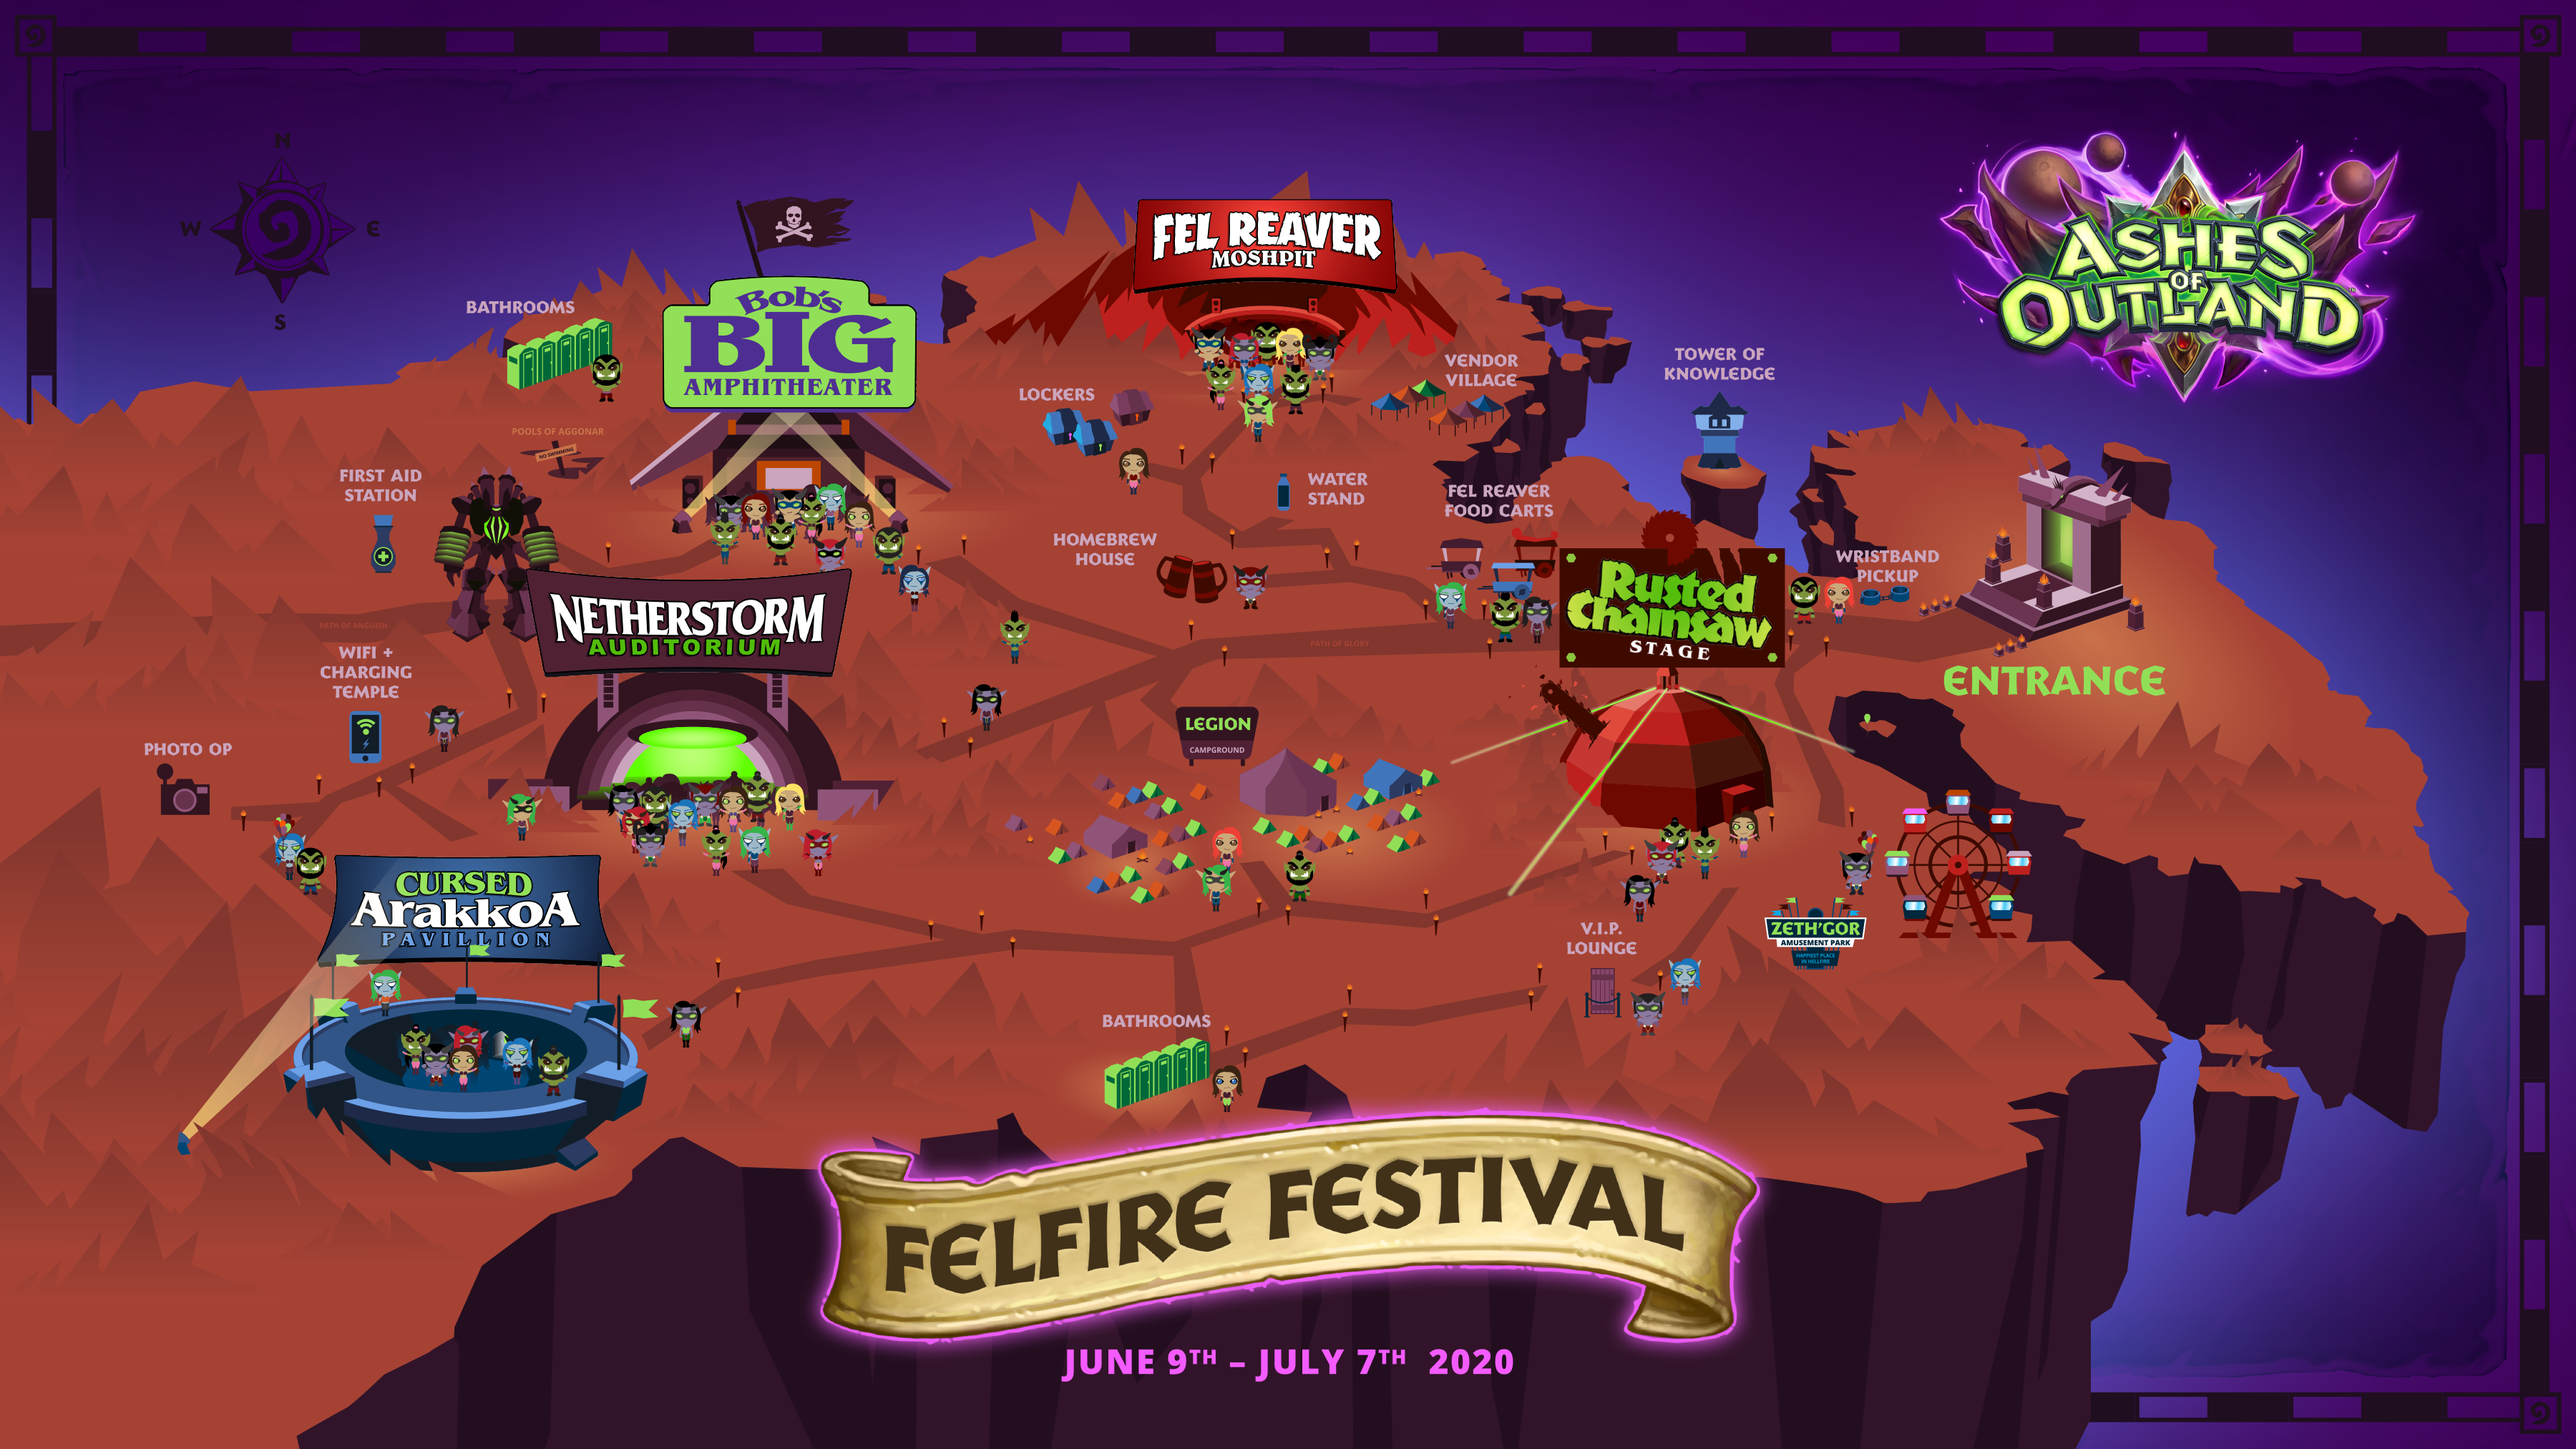 HS_17p4_Felfire_Festival_Map_Illustration_06_BVID.png